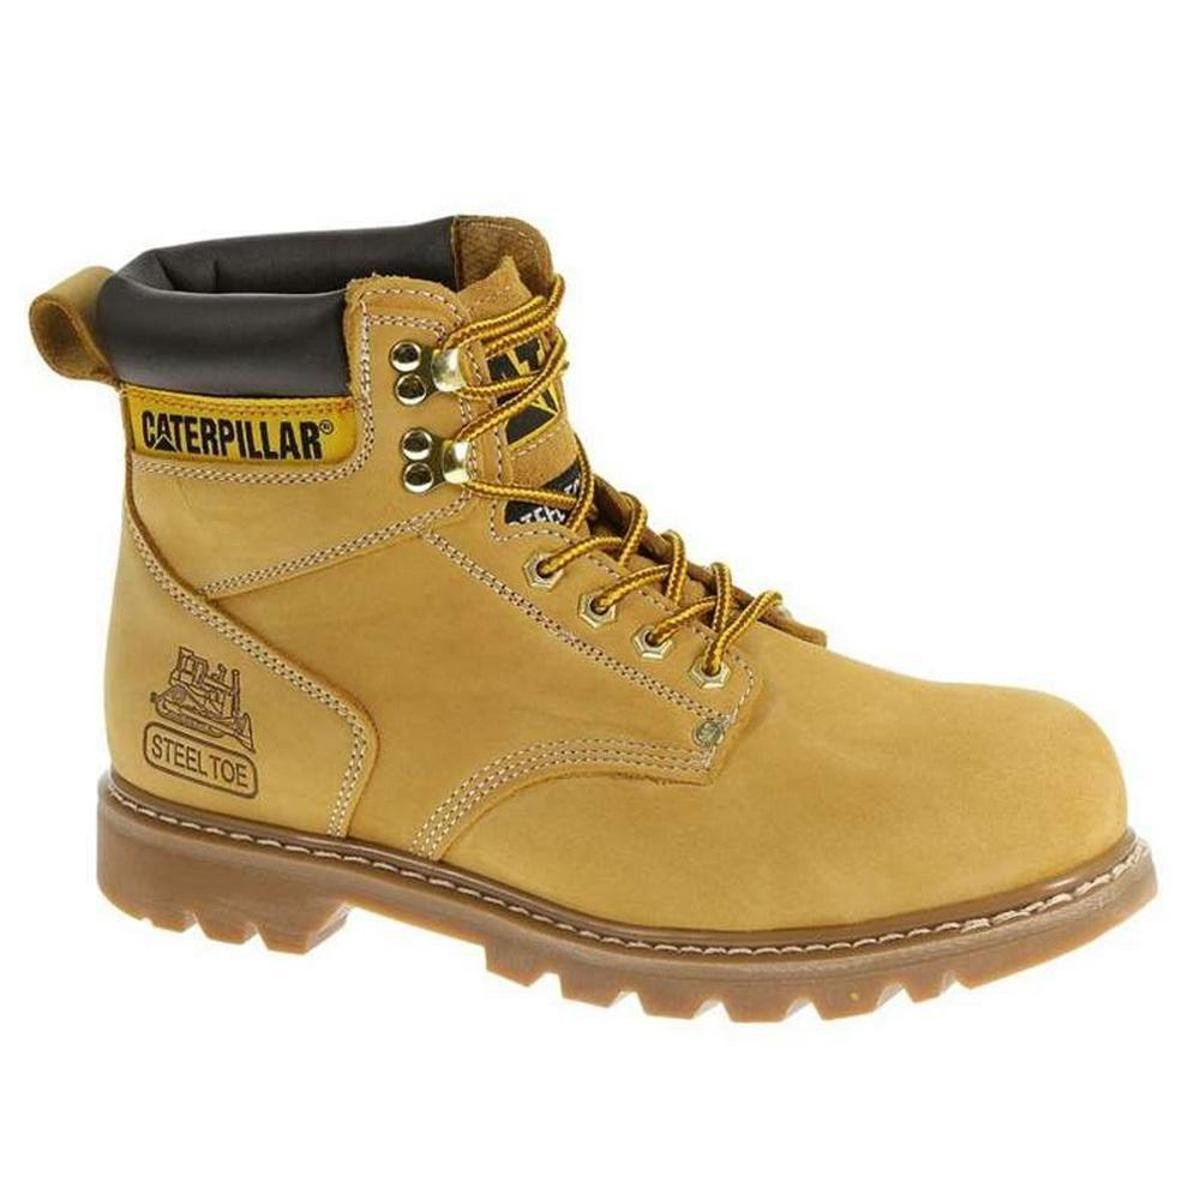 Bota Masculina Caterpillar Second Shift - Honey